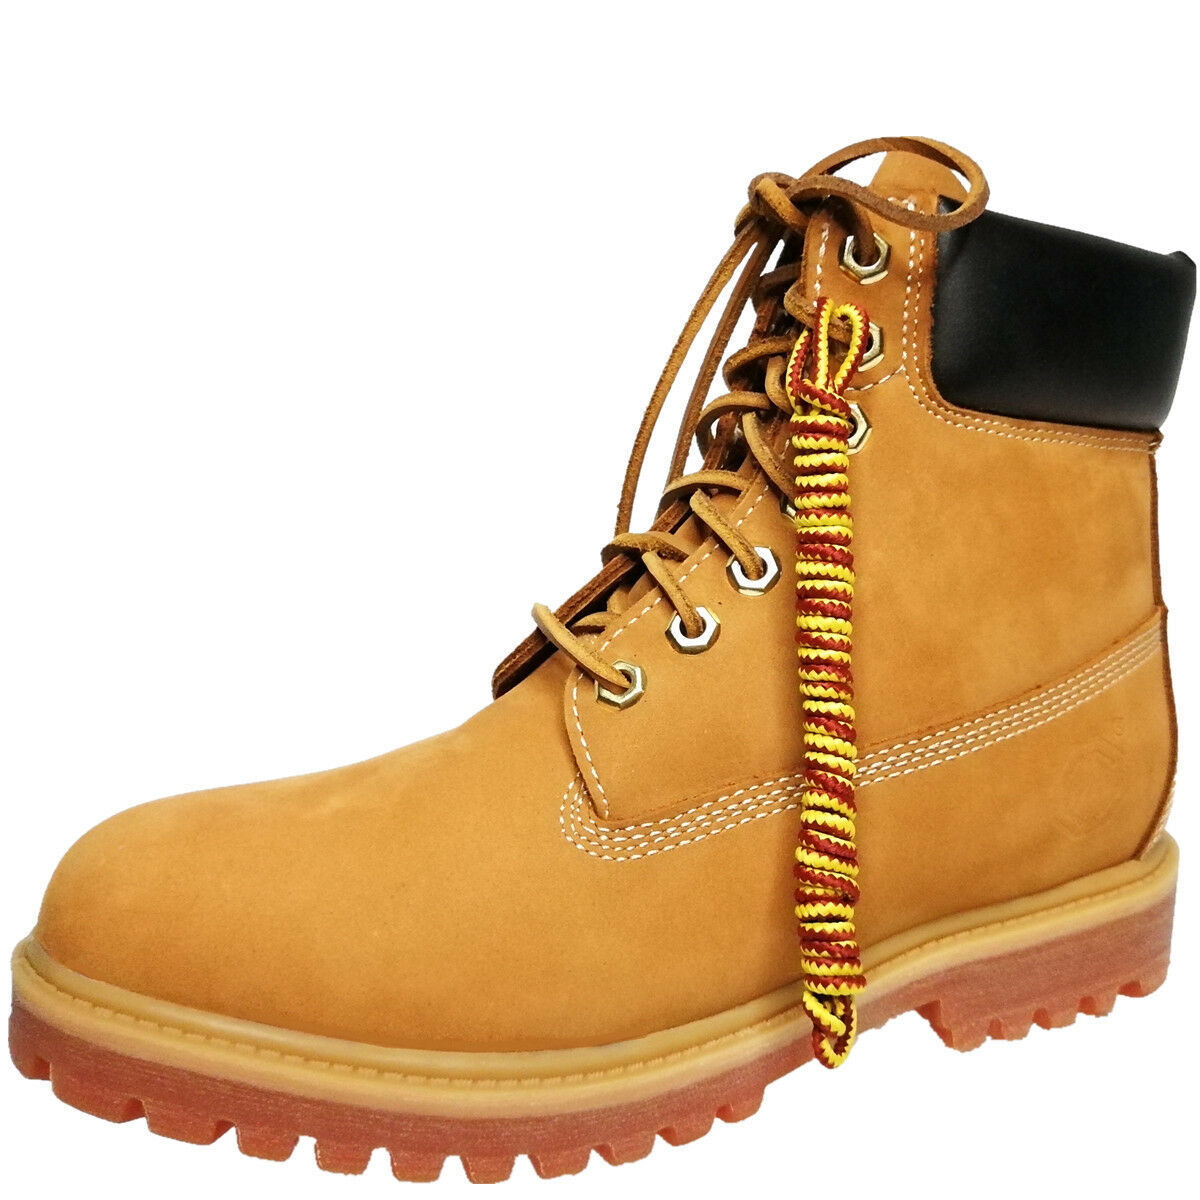 10061Men's 6  Premium Waterproof Boot  2.2MM cowhide   leather shoes lace + nylo